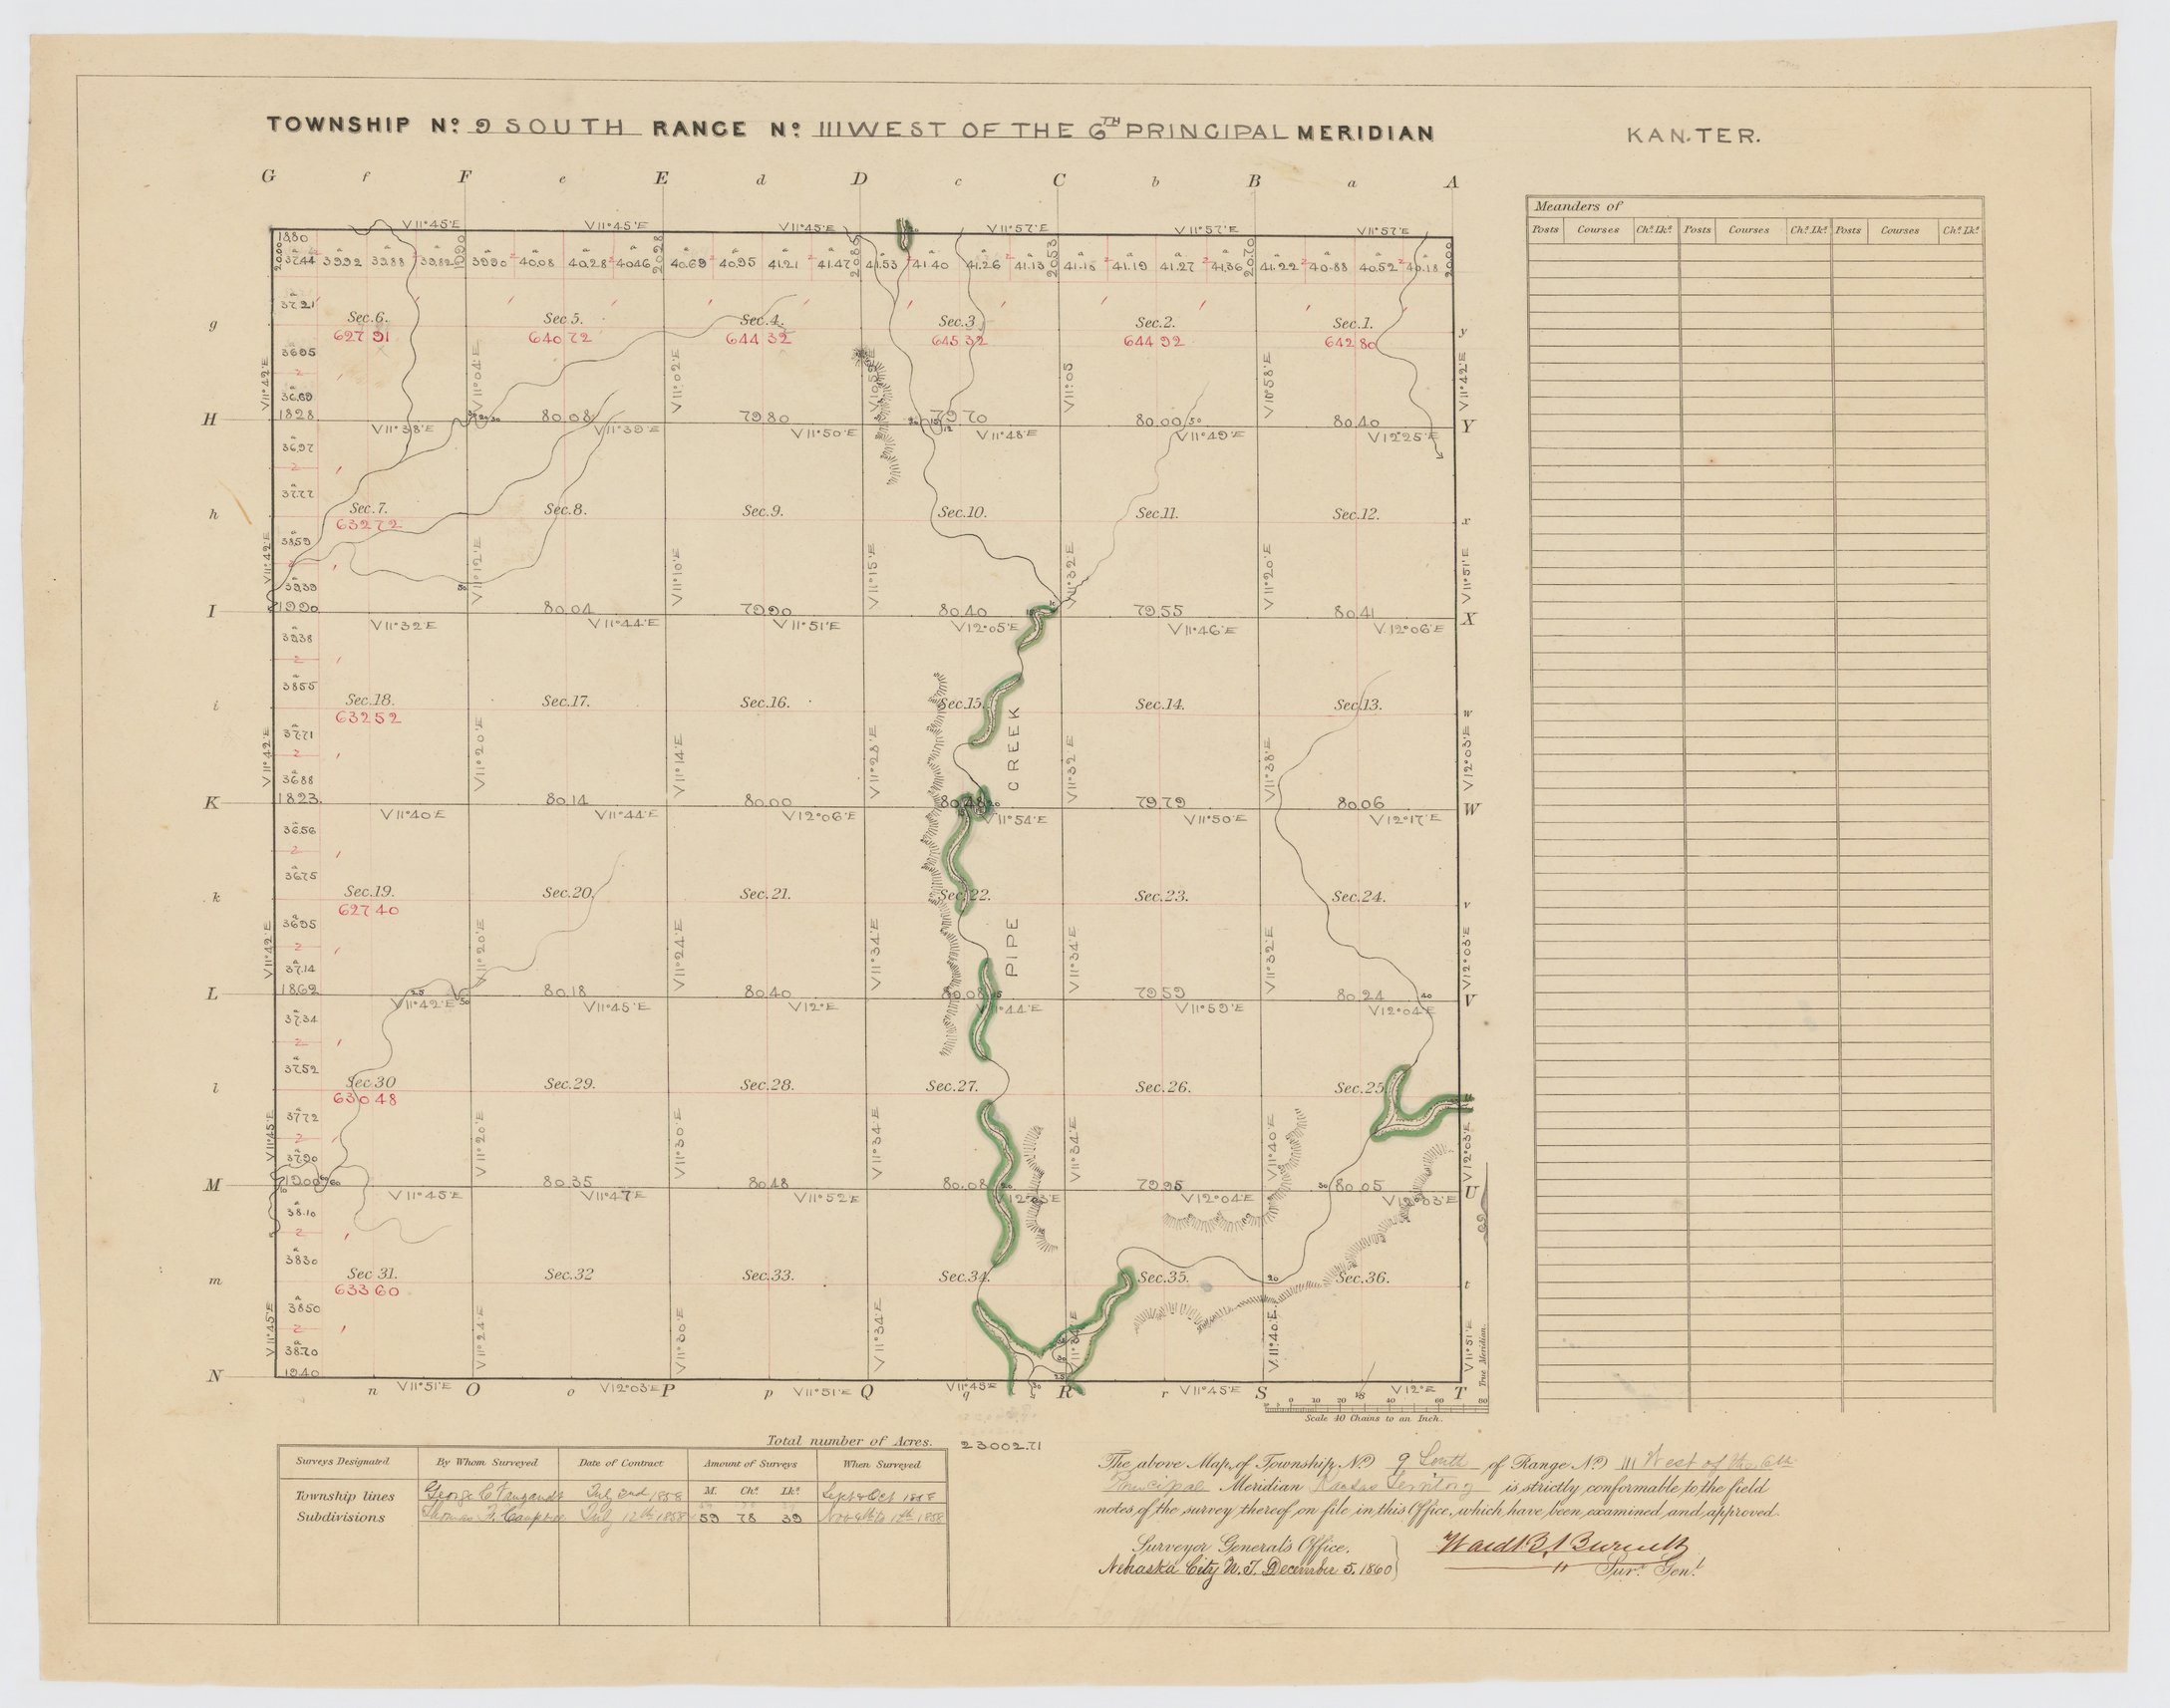 Land Survey Plats and Tract Books, Township 9 South, Range 111 West